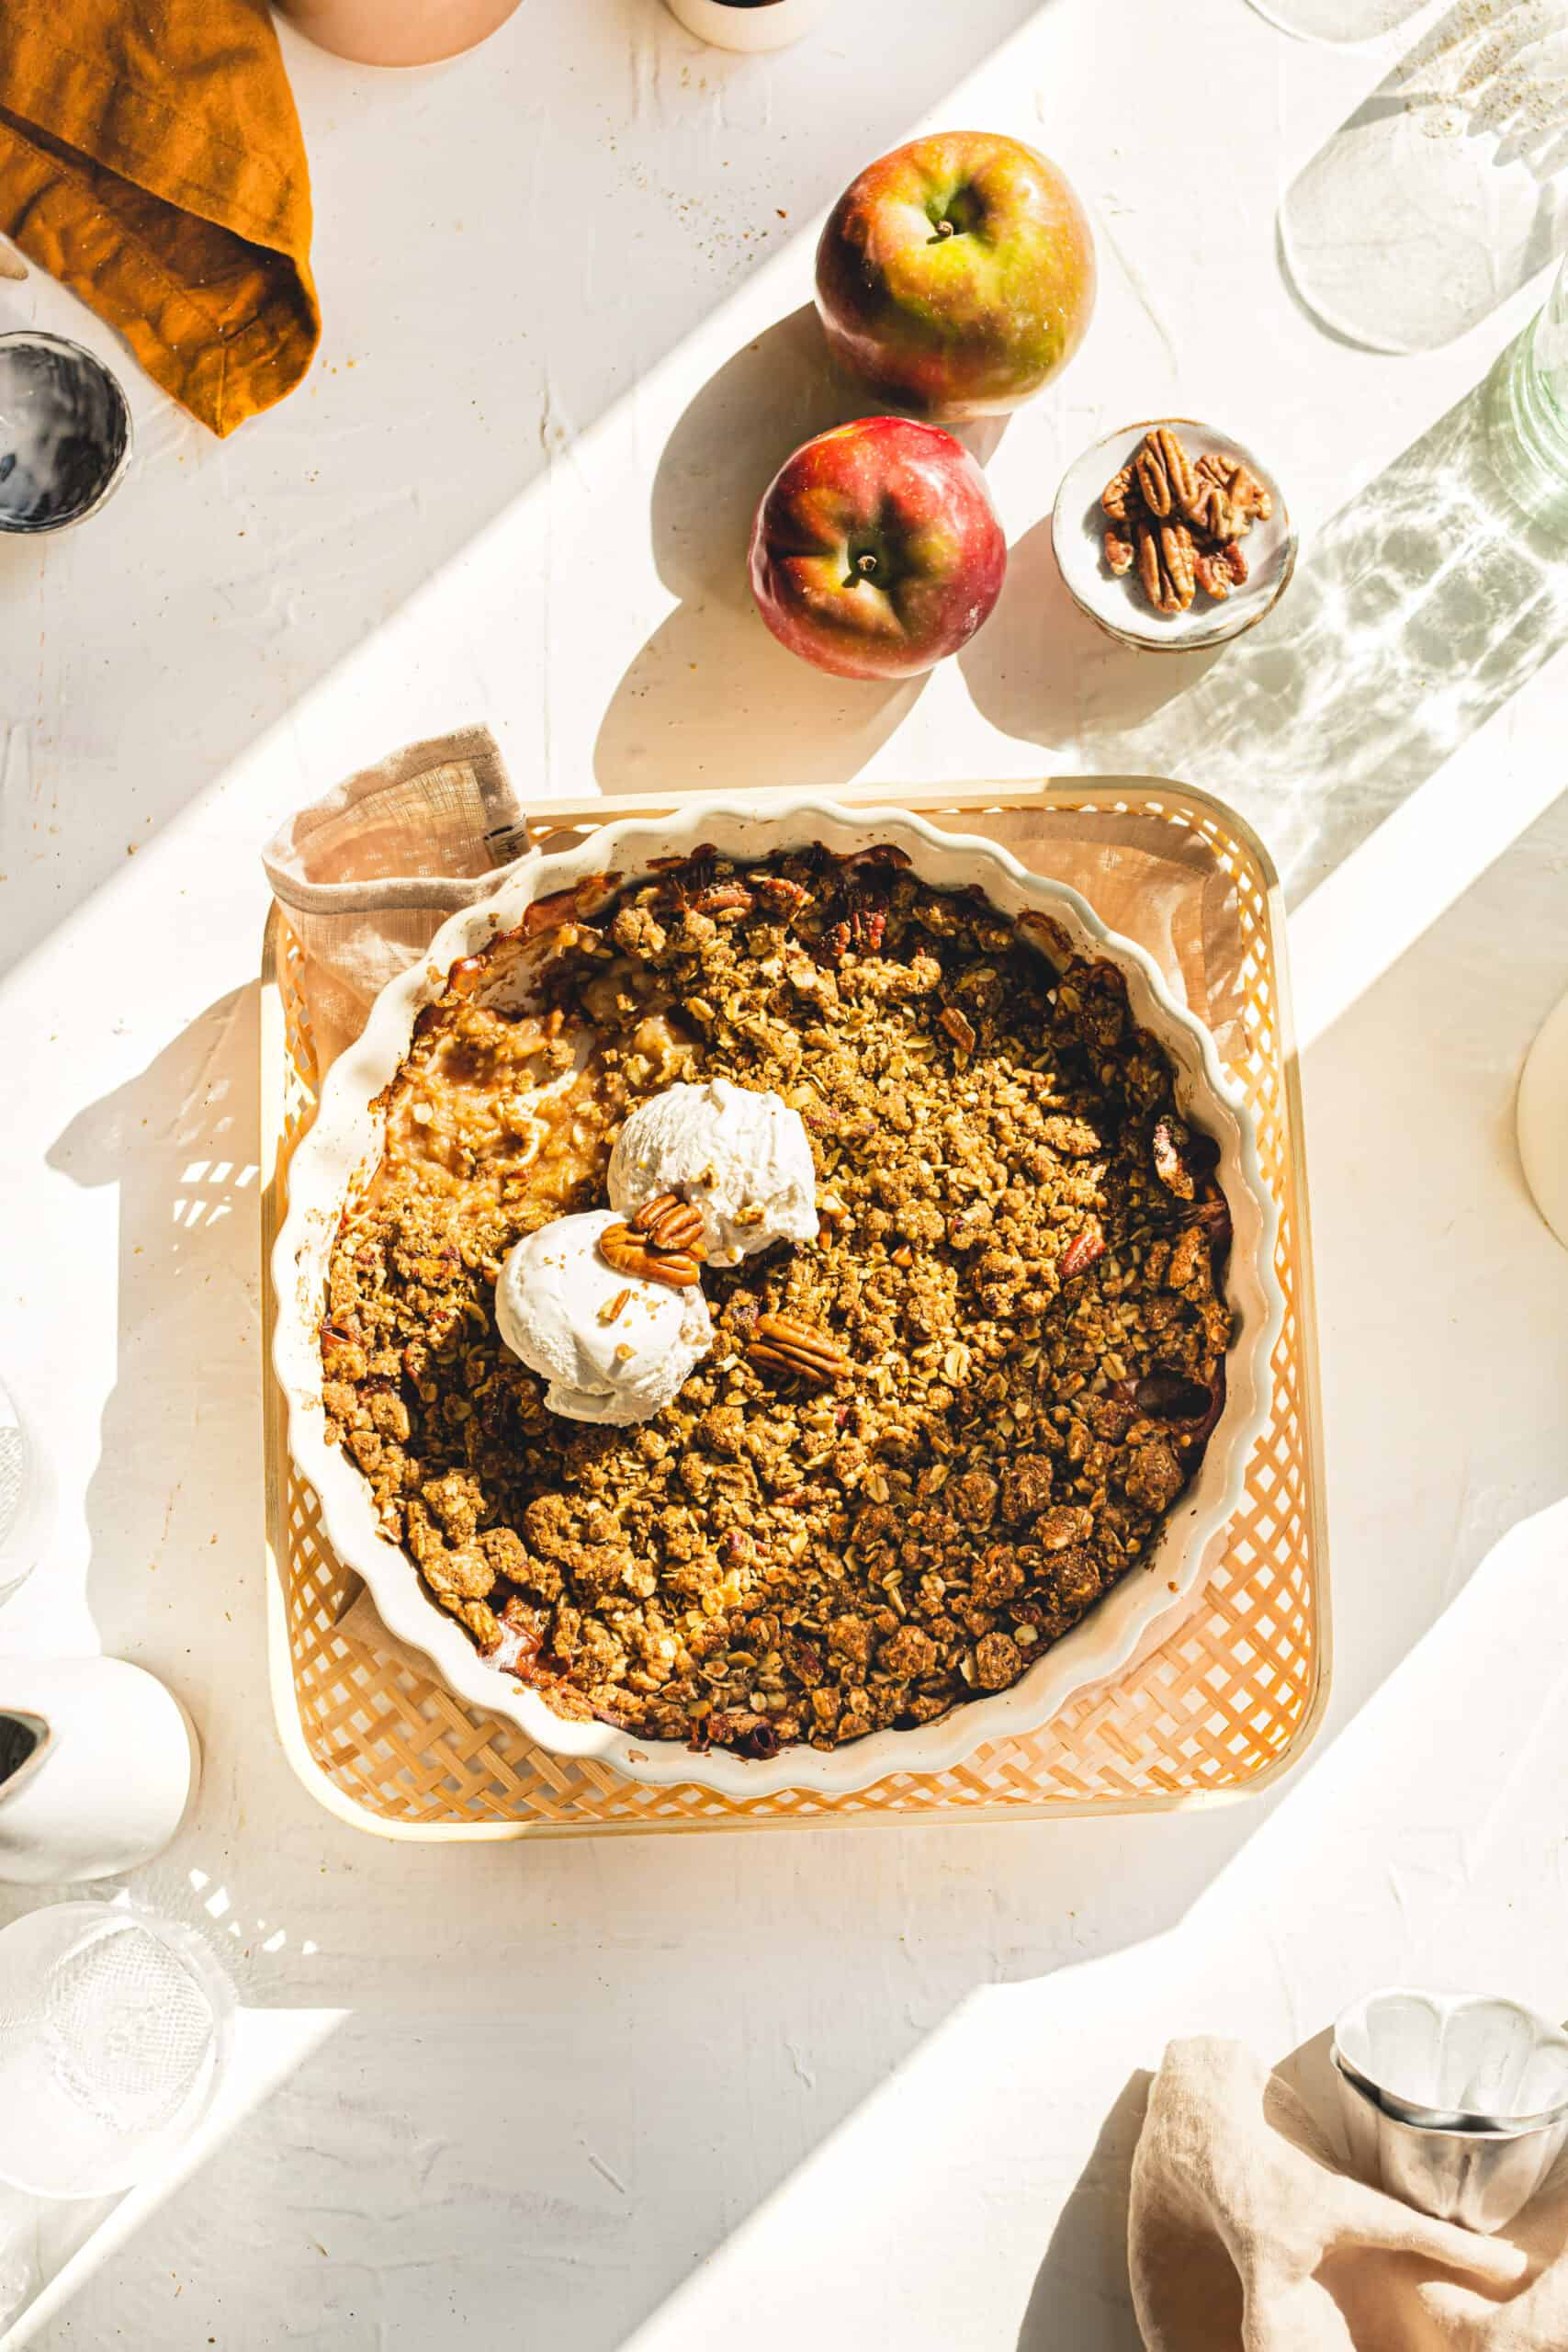 Vegan Apple Crumble with perfect sunlight shining in onto the serving dish with vanilla ice cream.